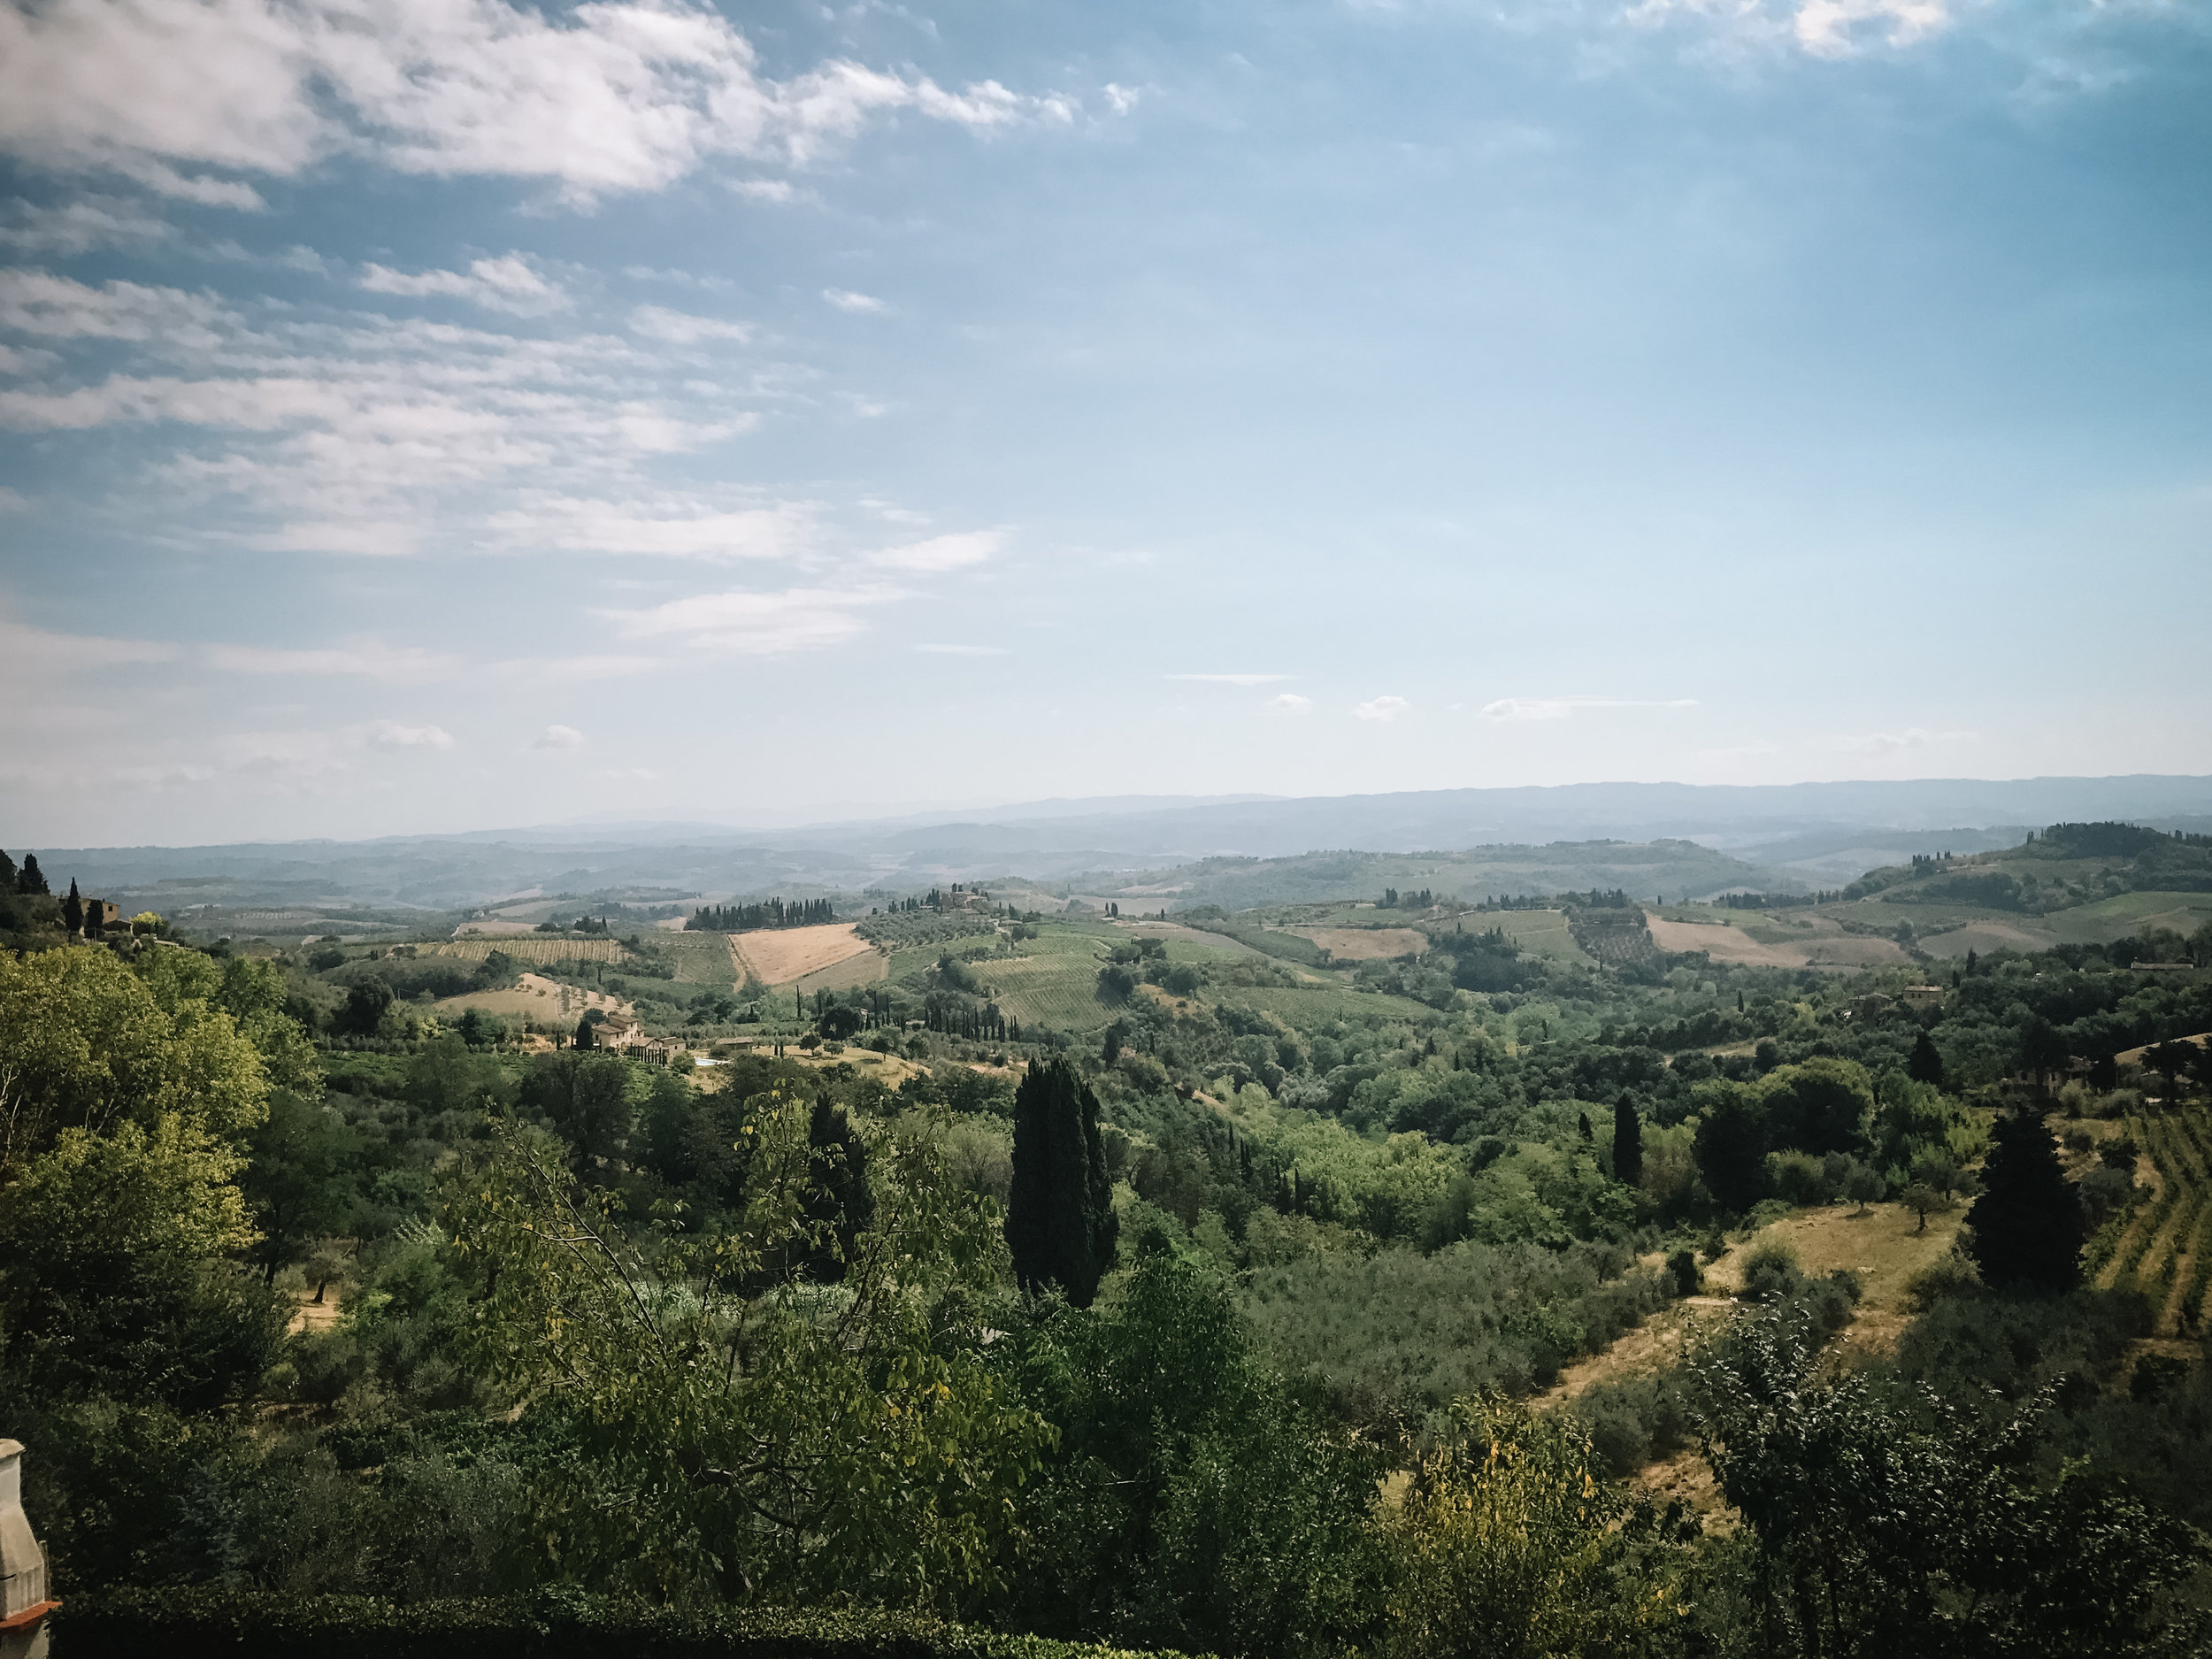 Italy-Florence and Tuscany-4.jpg